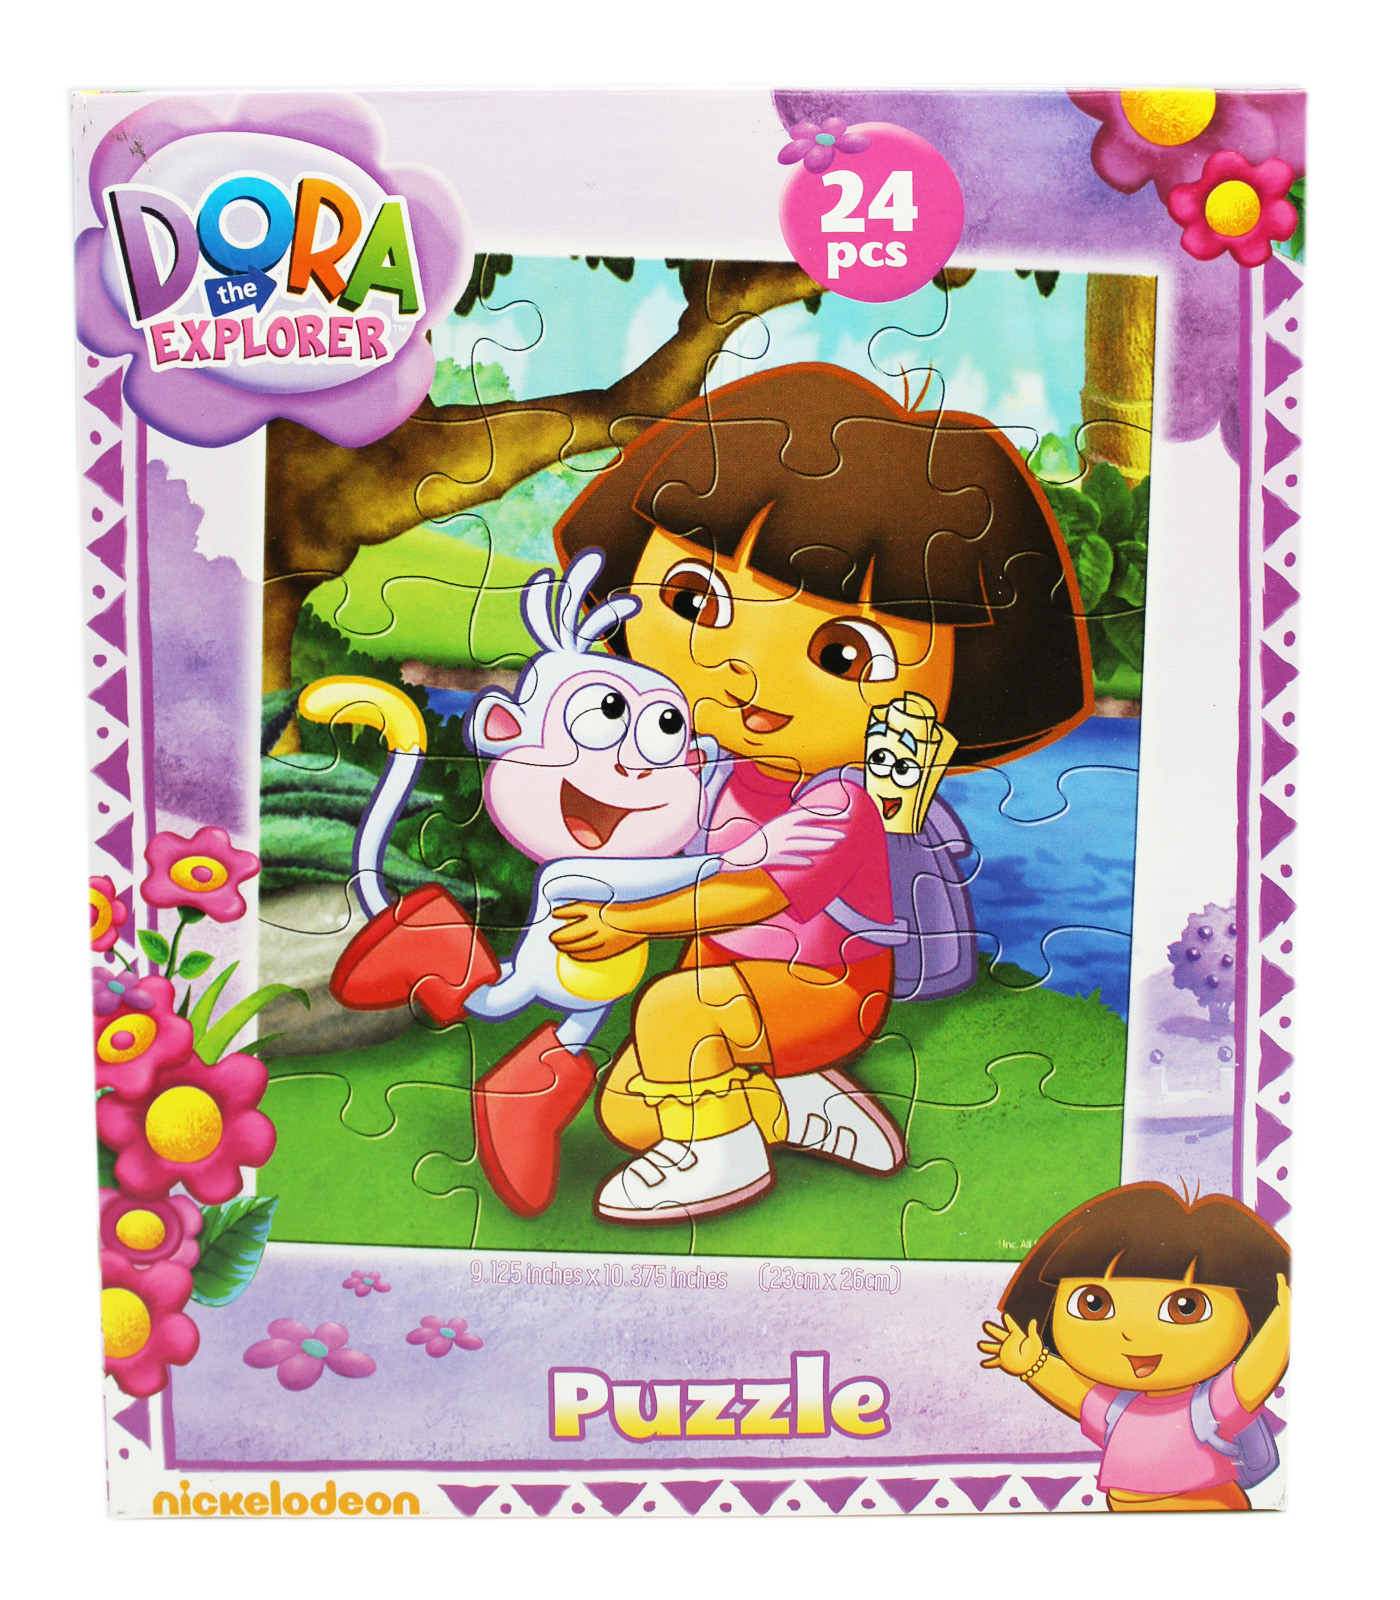 Dora the Explorer Boots and Dora Hugging Kids Jigsaw Puzzle (24pc) by